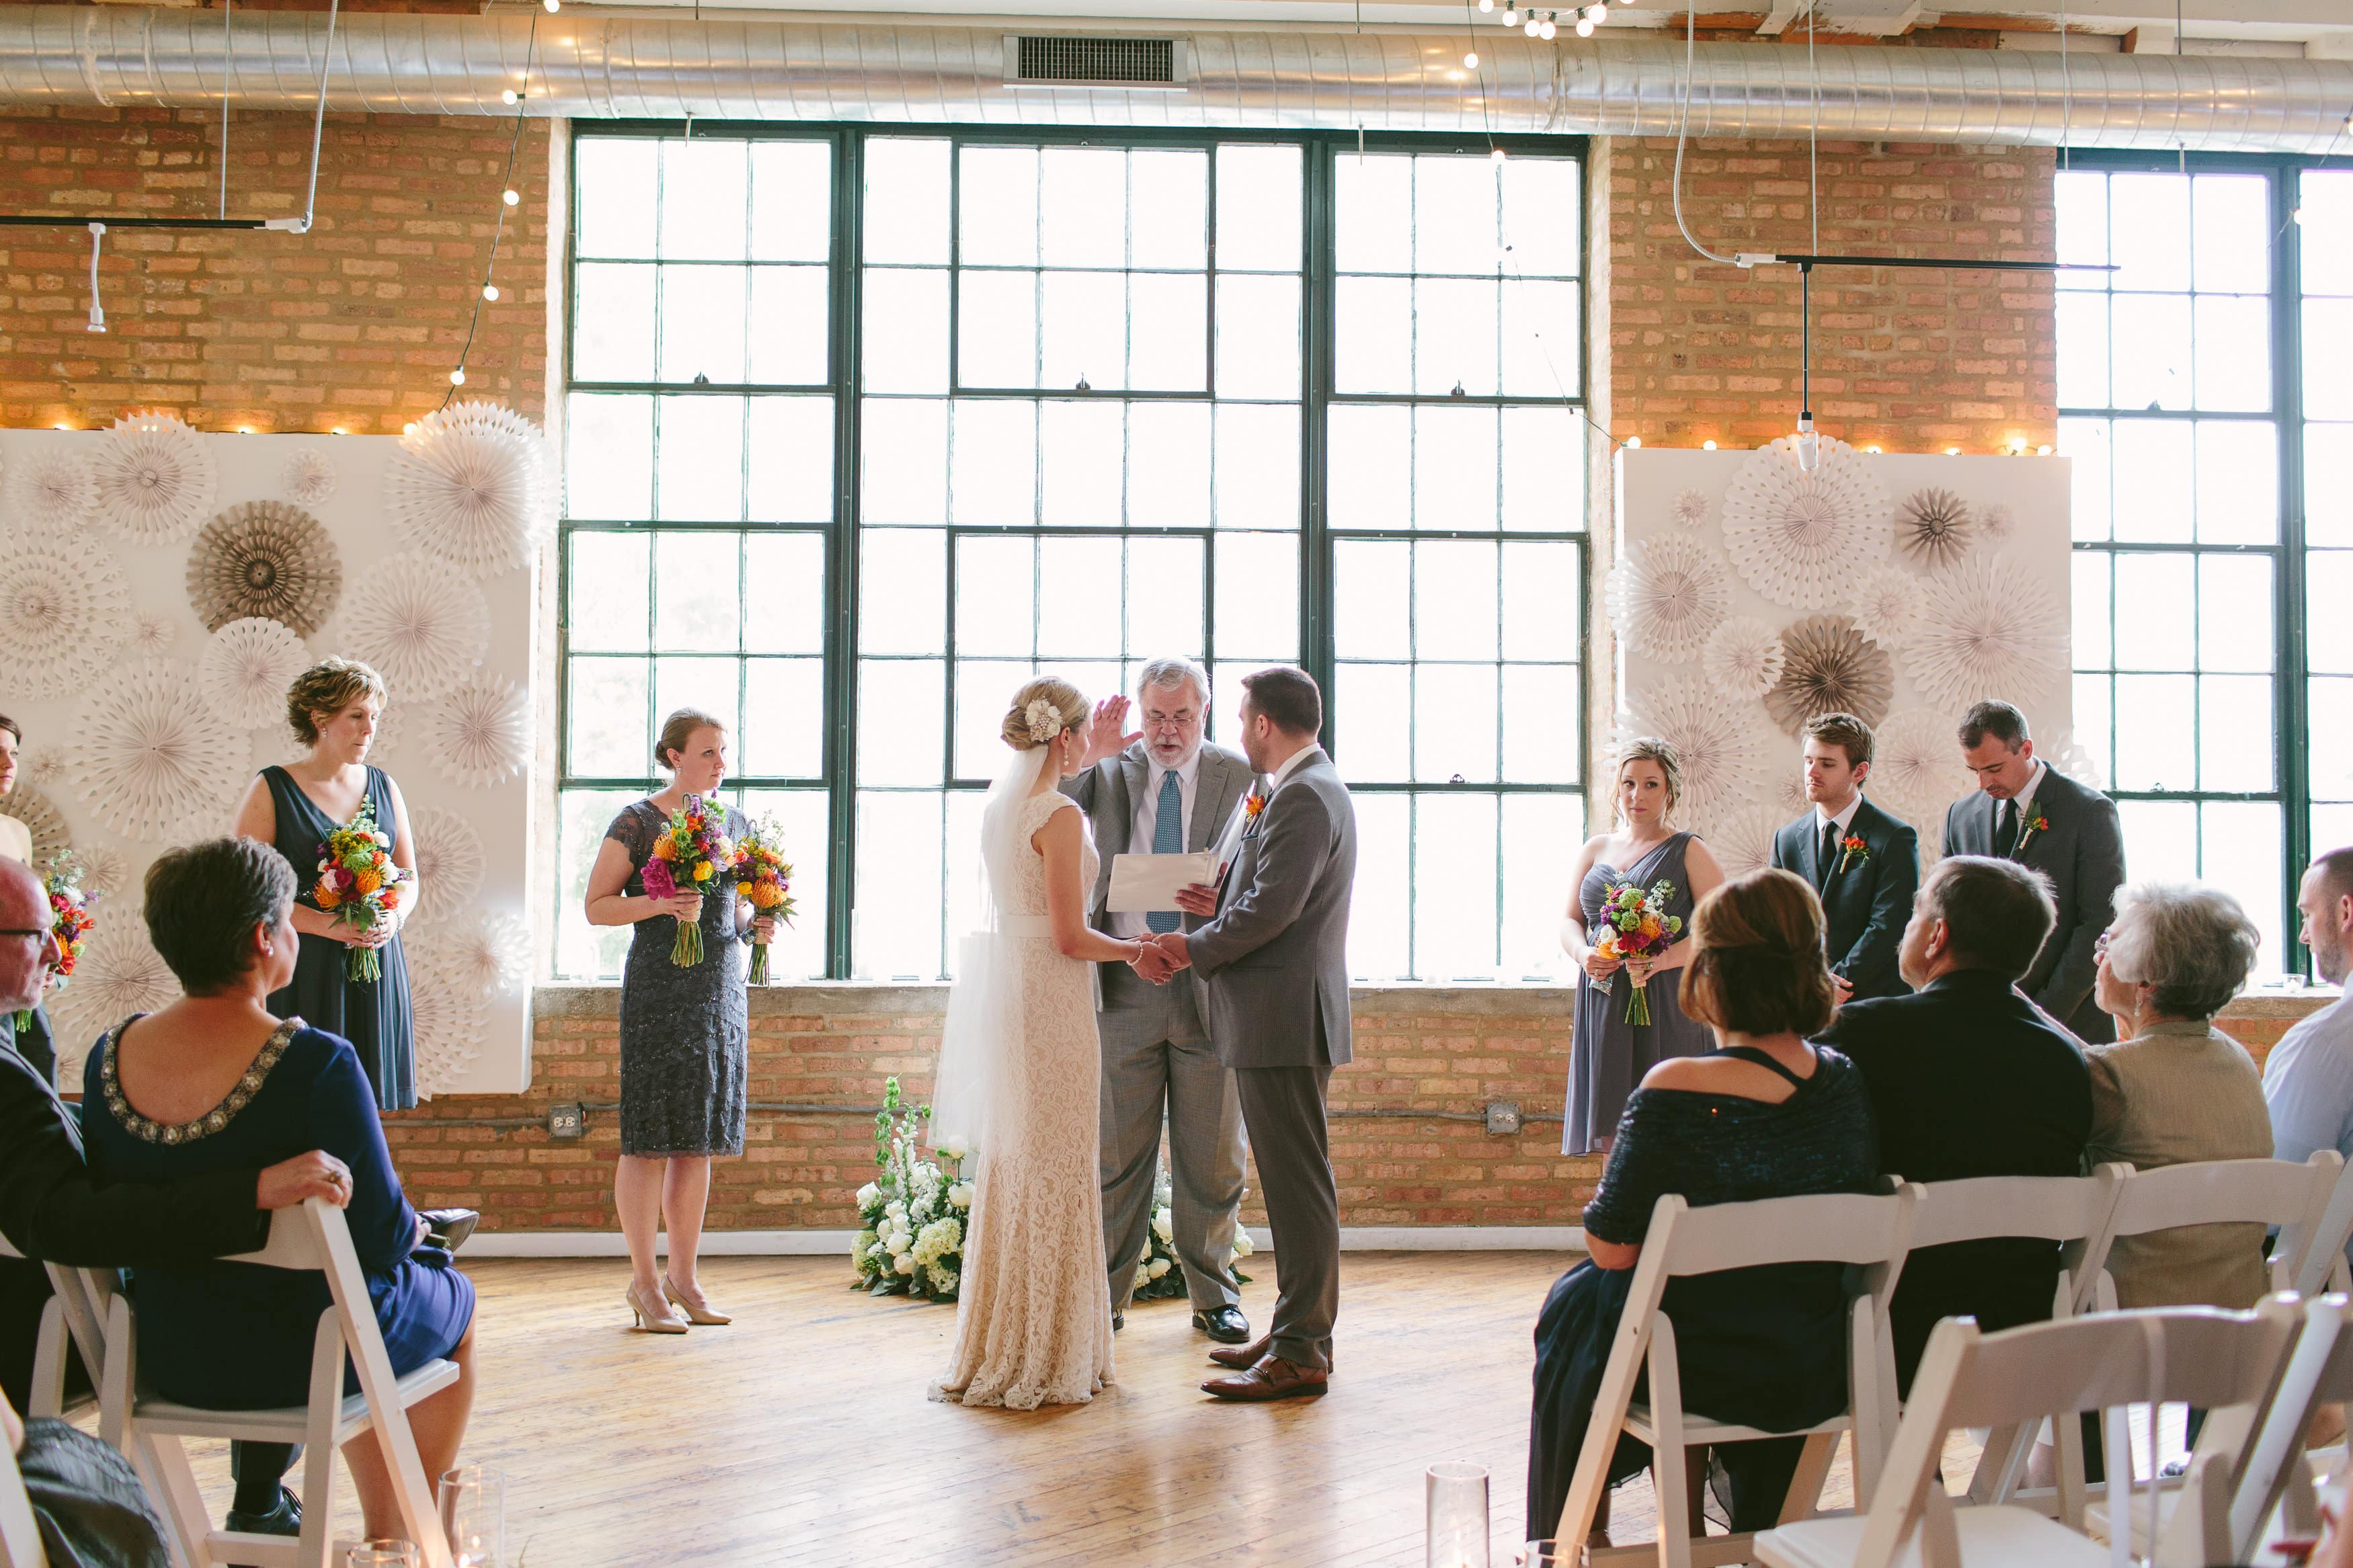 Tony and Katie getting married